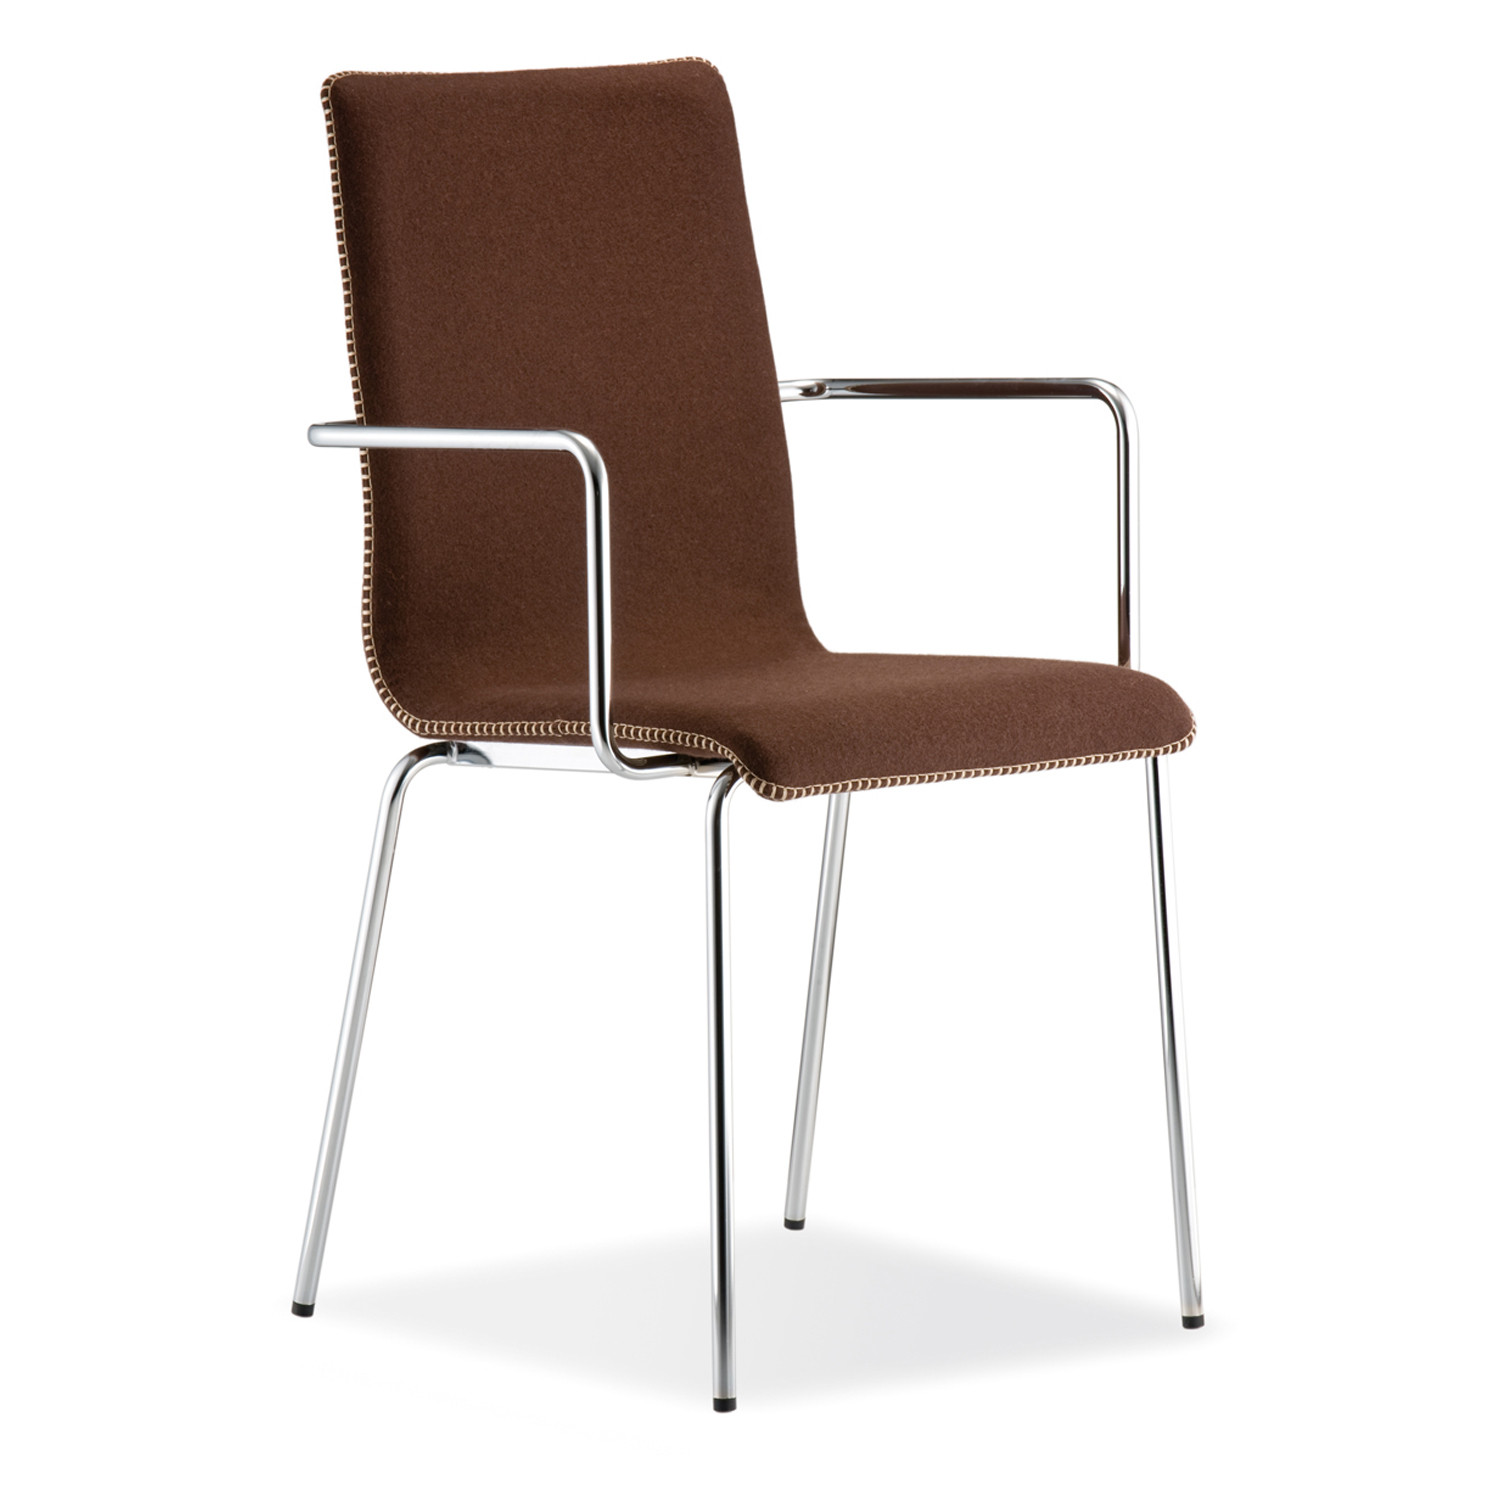 Kuadra Soft Armed Chair